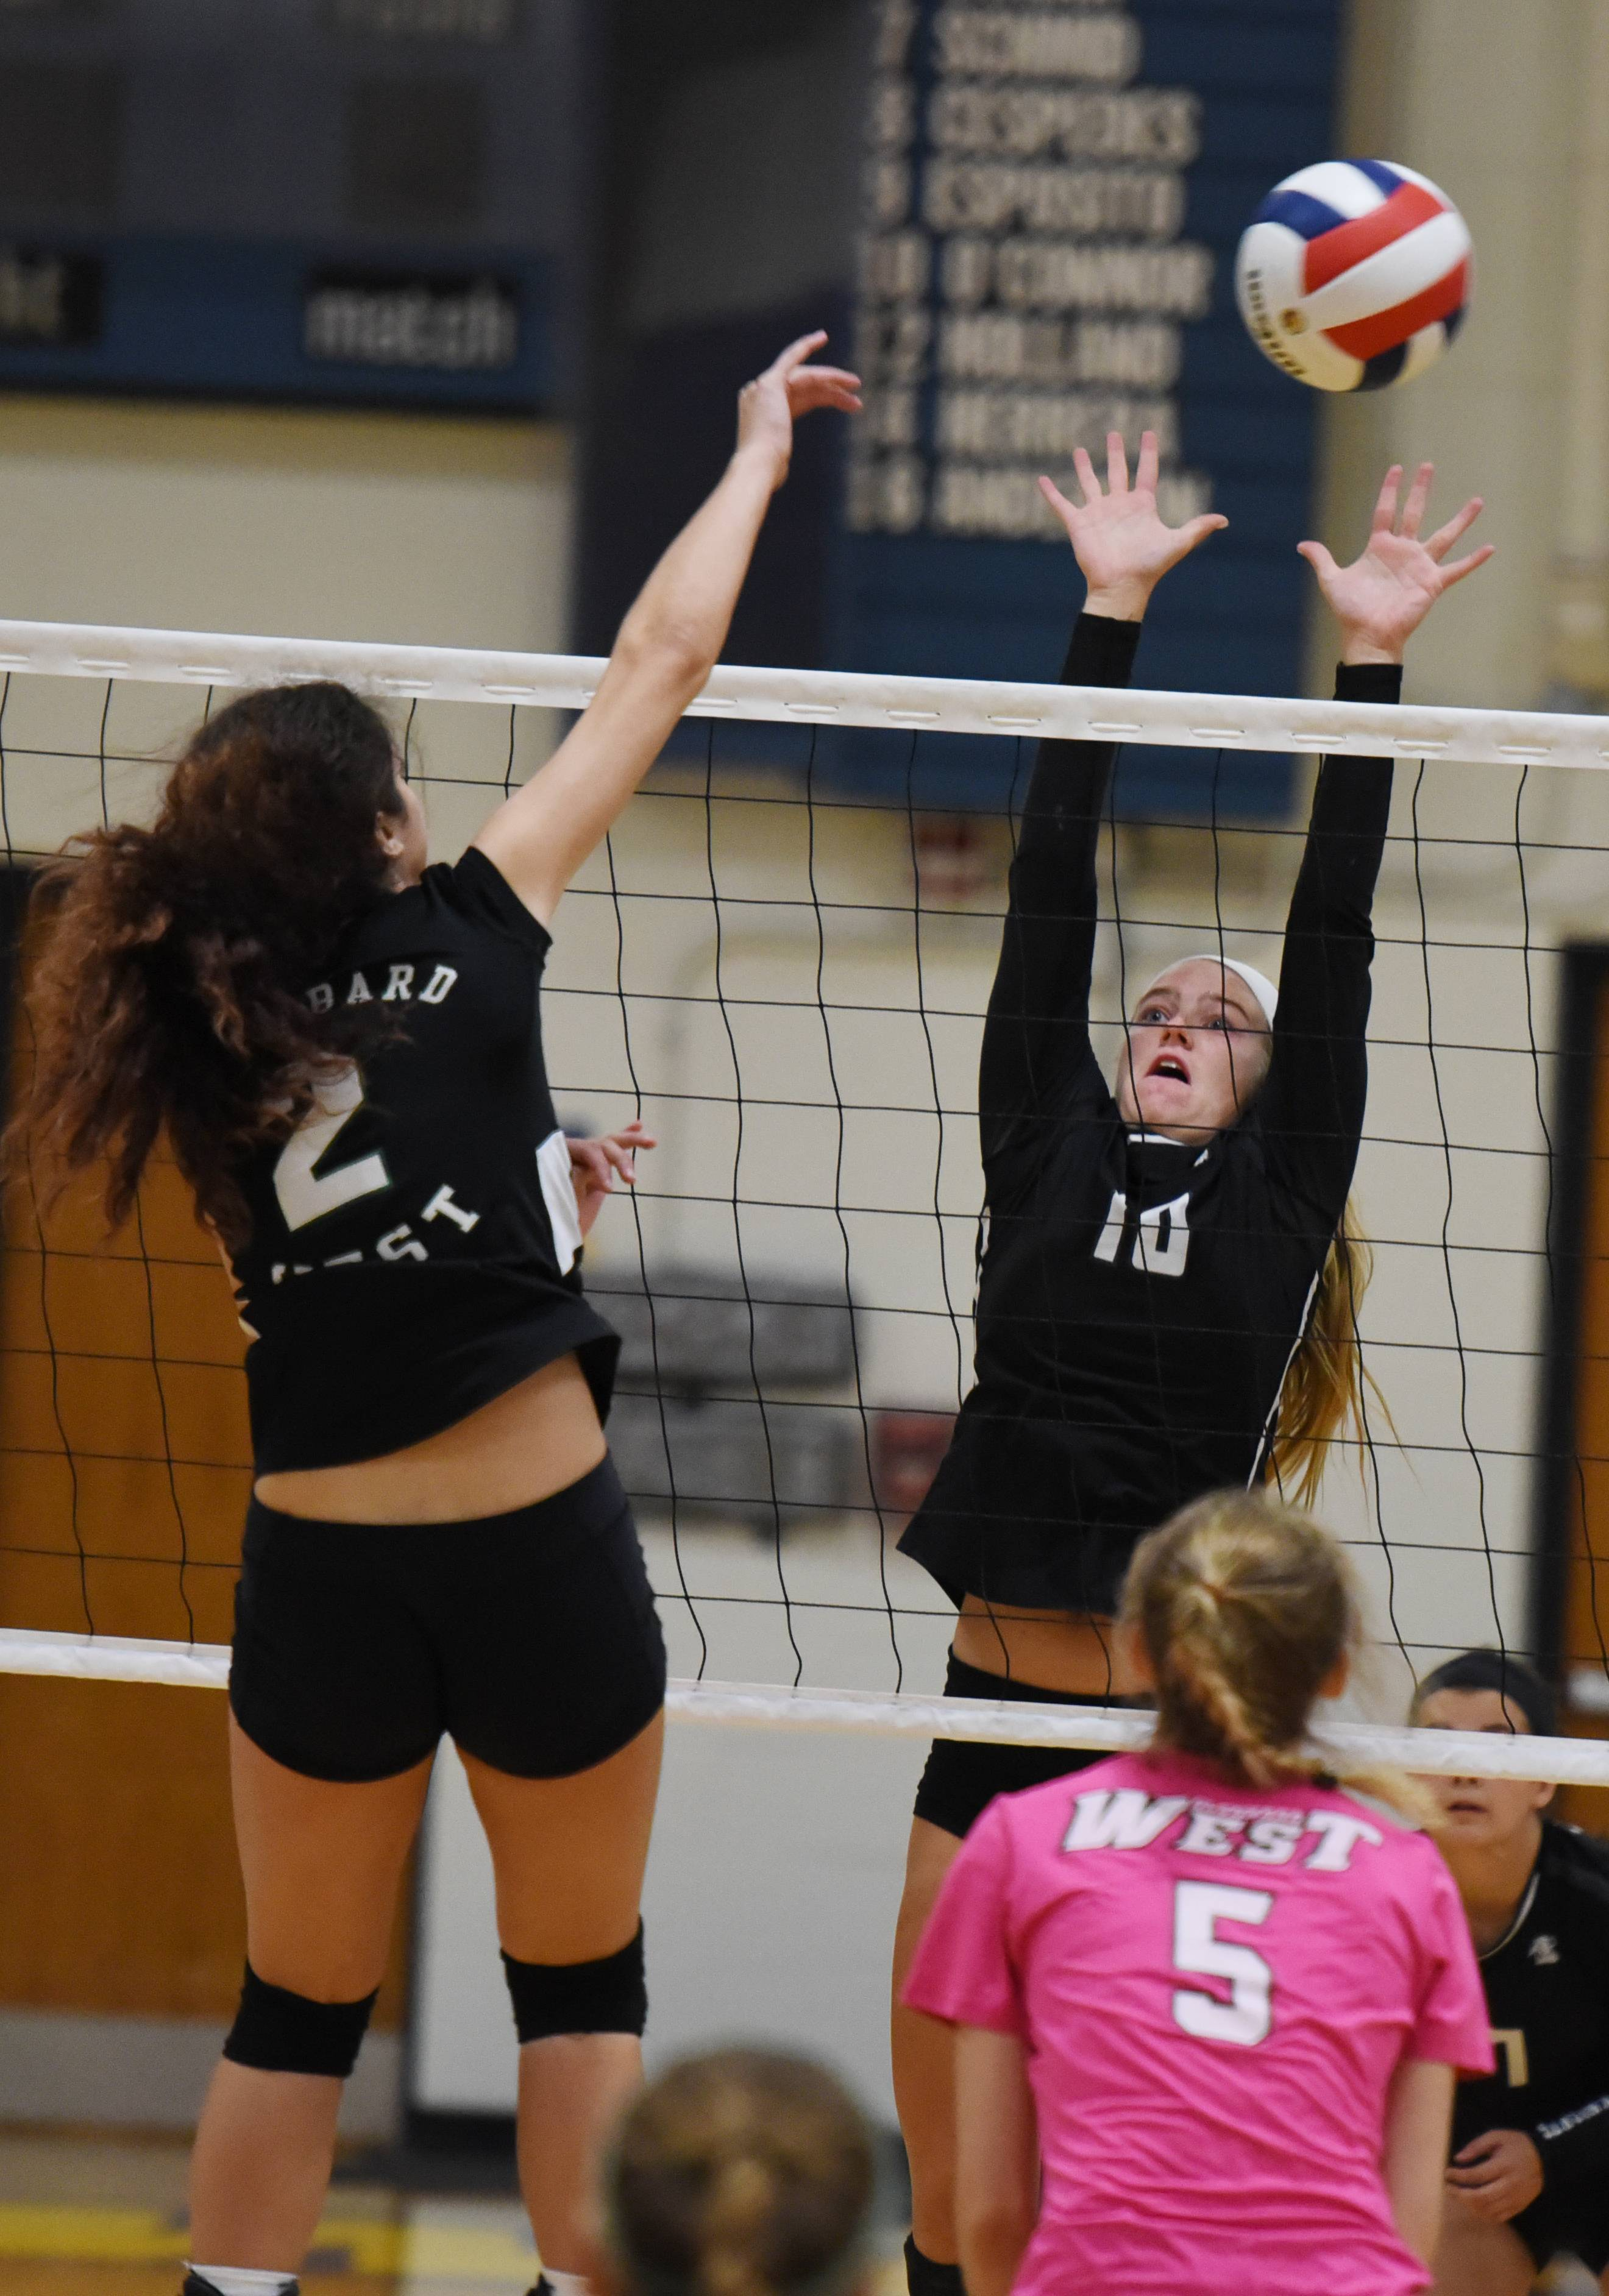 Sophia Alles of Glenbard West, left, battles with Kaneland's Hannah Nauert Saturday during the championship match of the Wheaton North tournament.